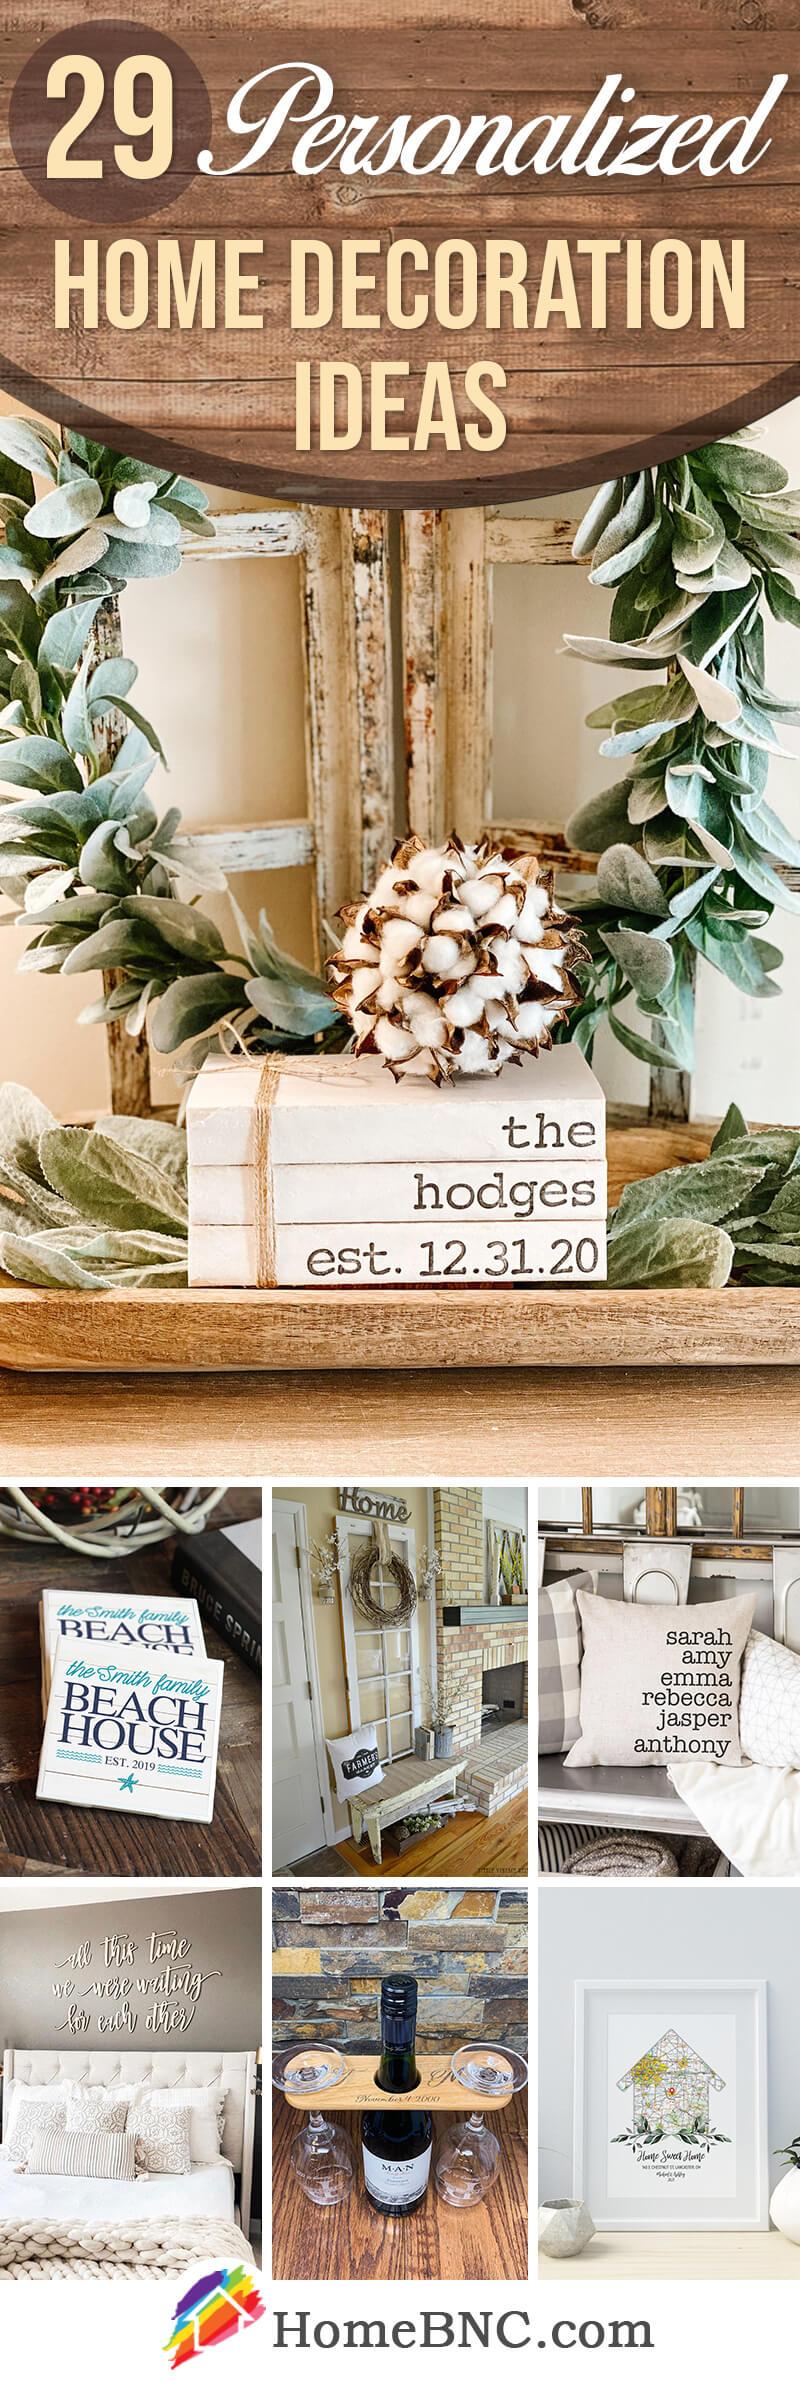 Best Personalized Home Decor Ideas